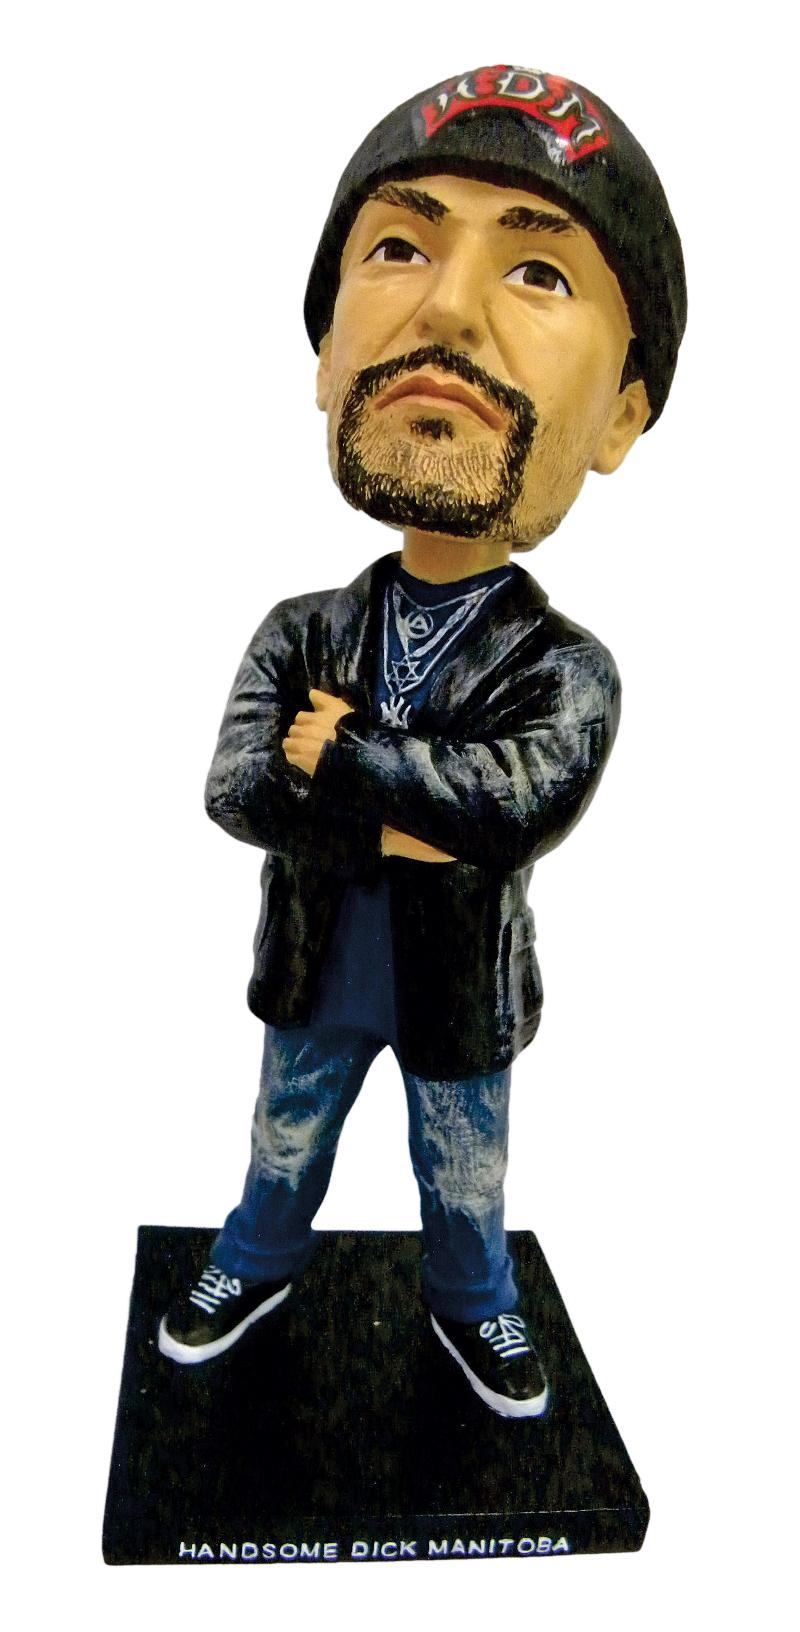 Handsome Dick Manitoba (Dictators) bobblehead